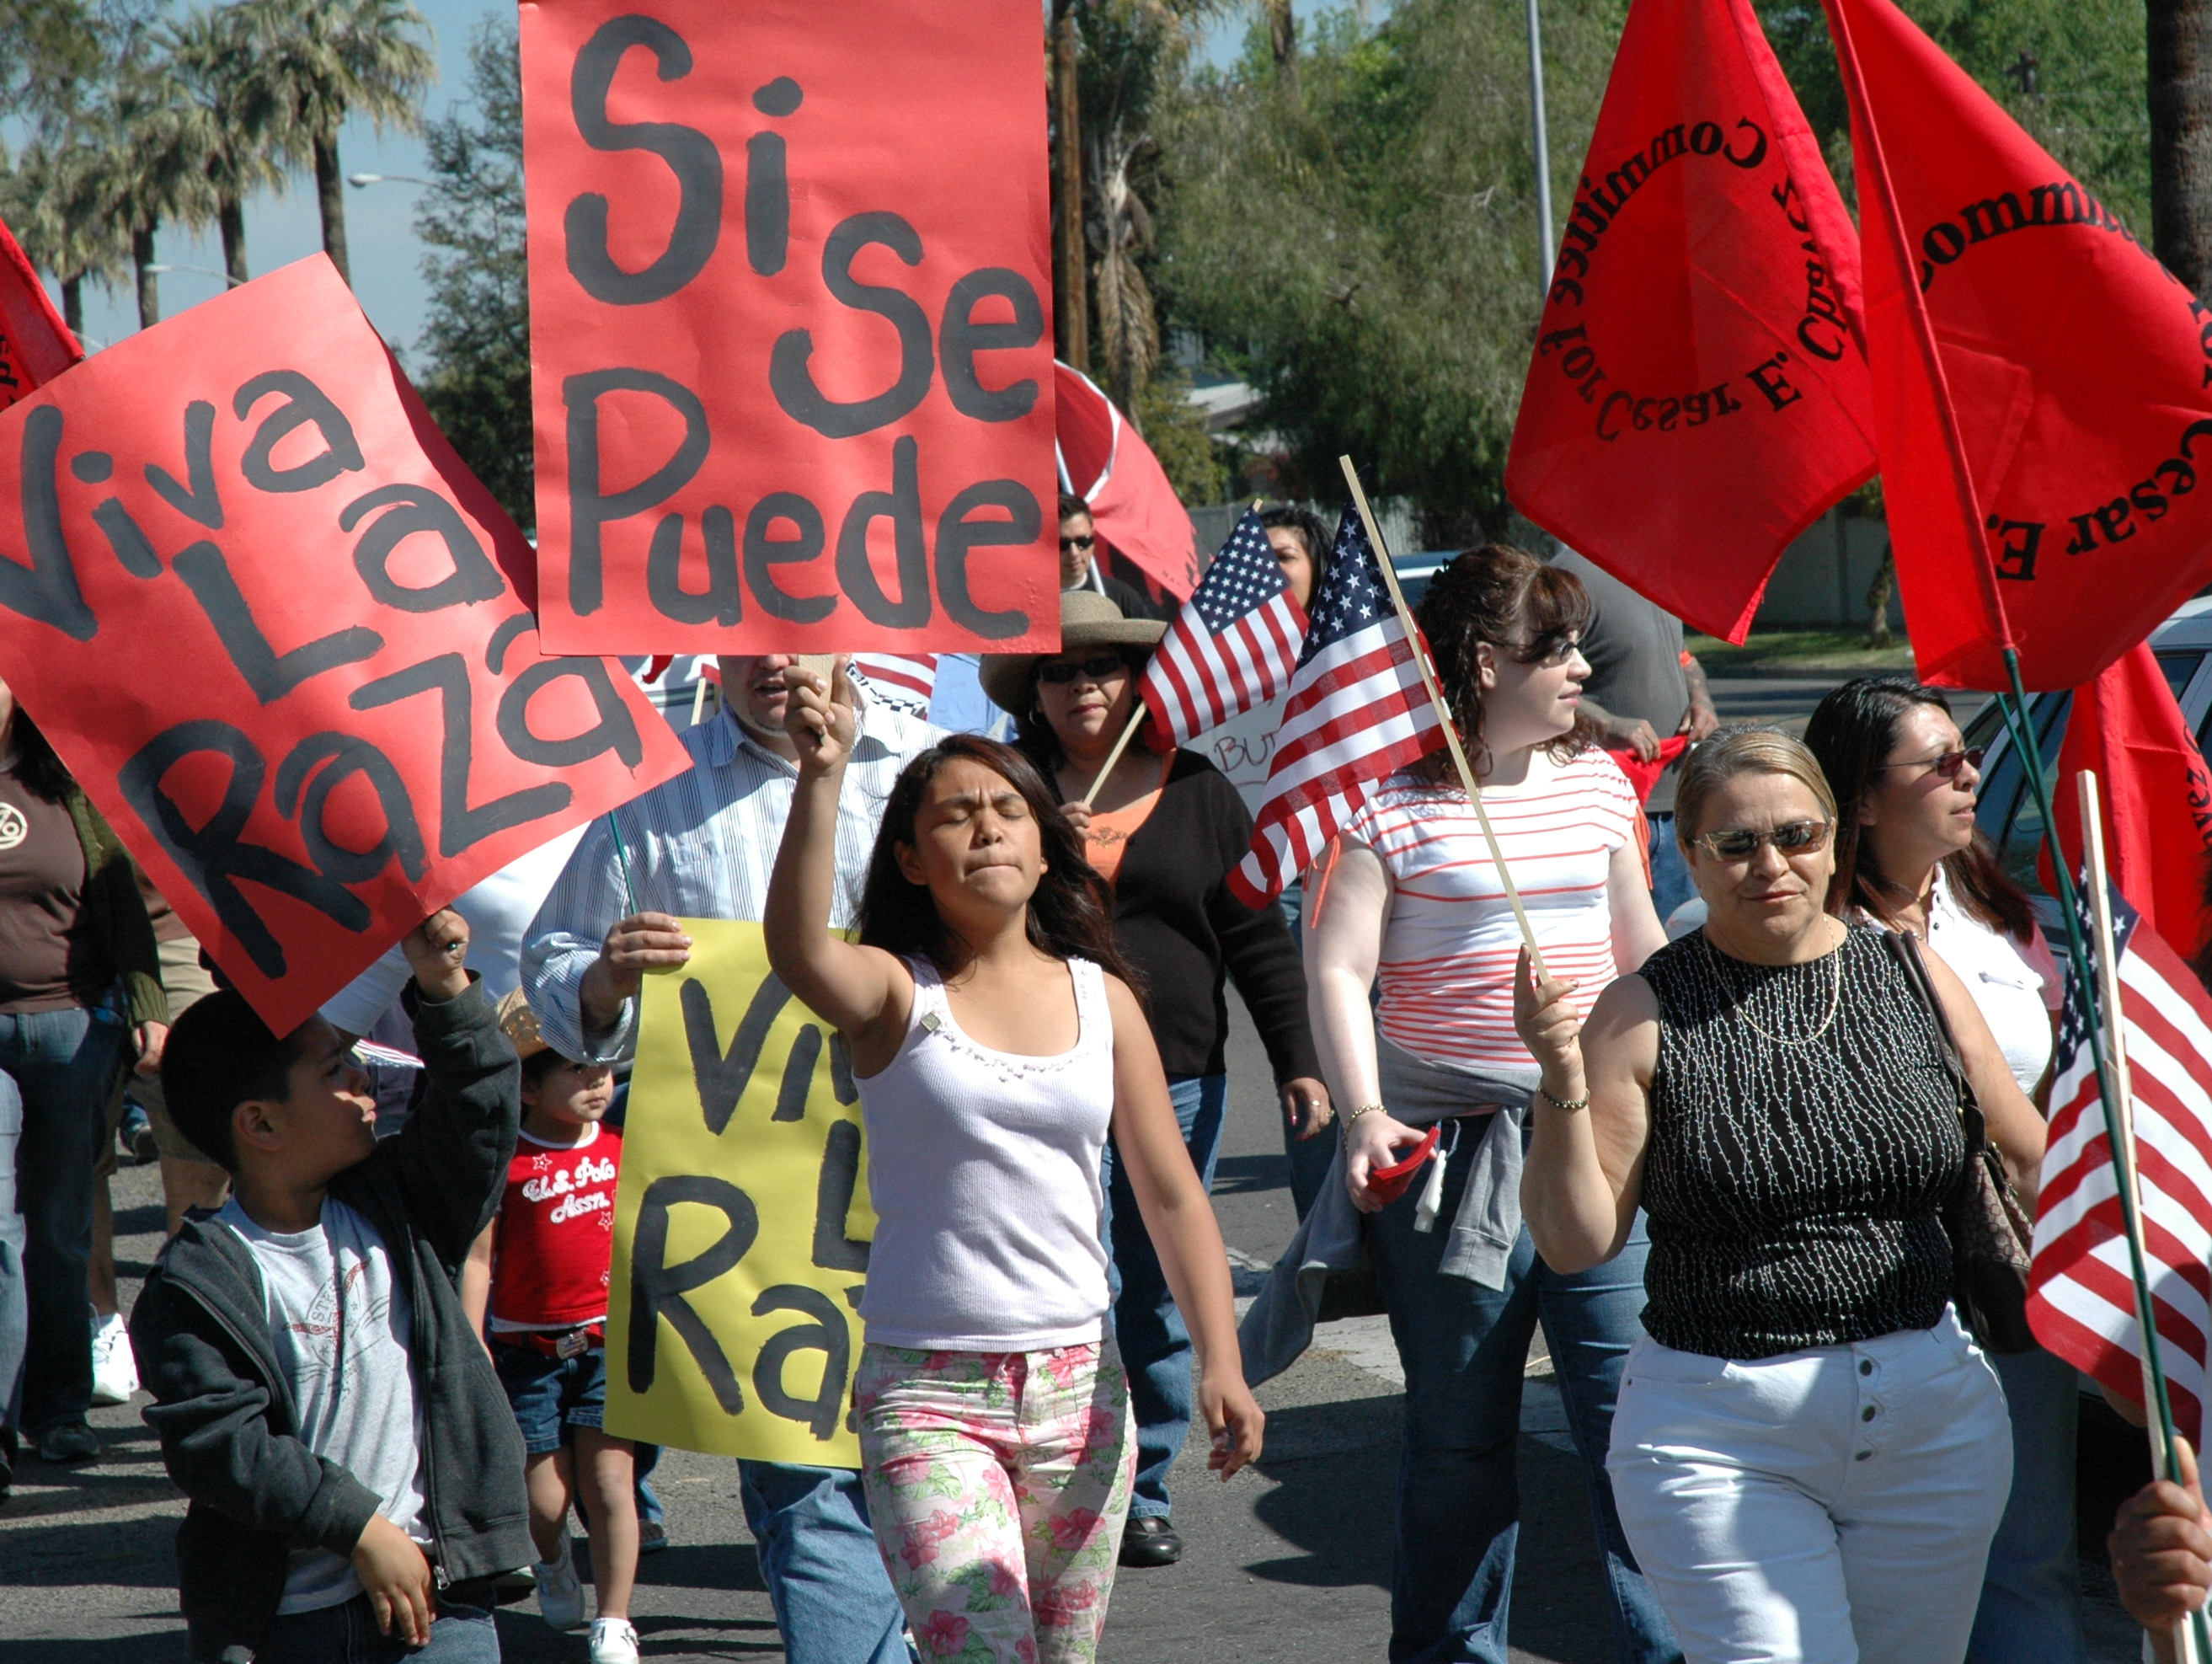 an analysis of cesar chavez holiday Keep the legacies of cesar chavez and dolores huerta alive  the arizona césar e chávez holiday coalition is a group of dedicated individuals working to honor.